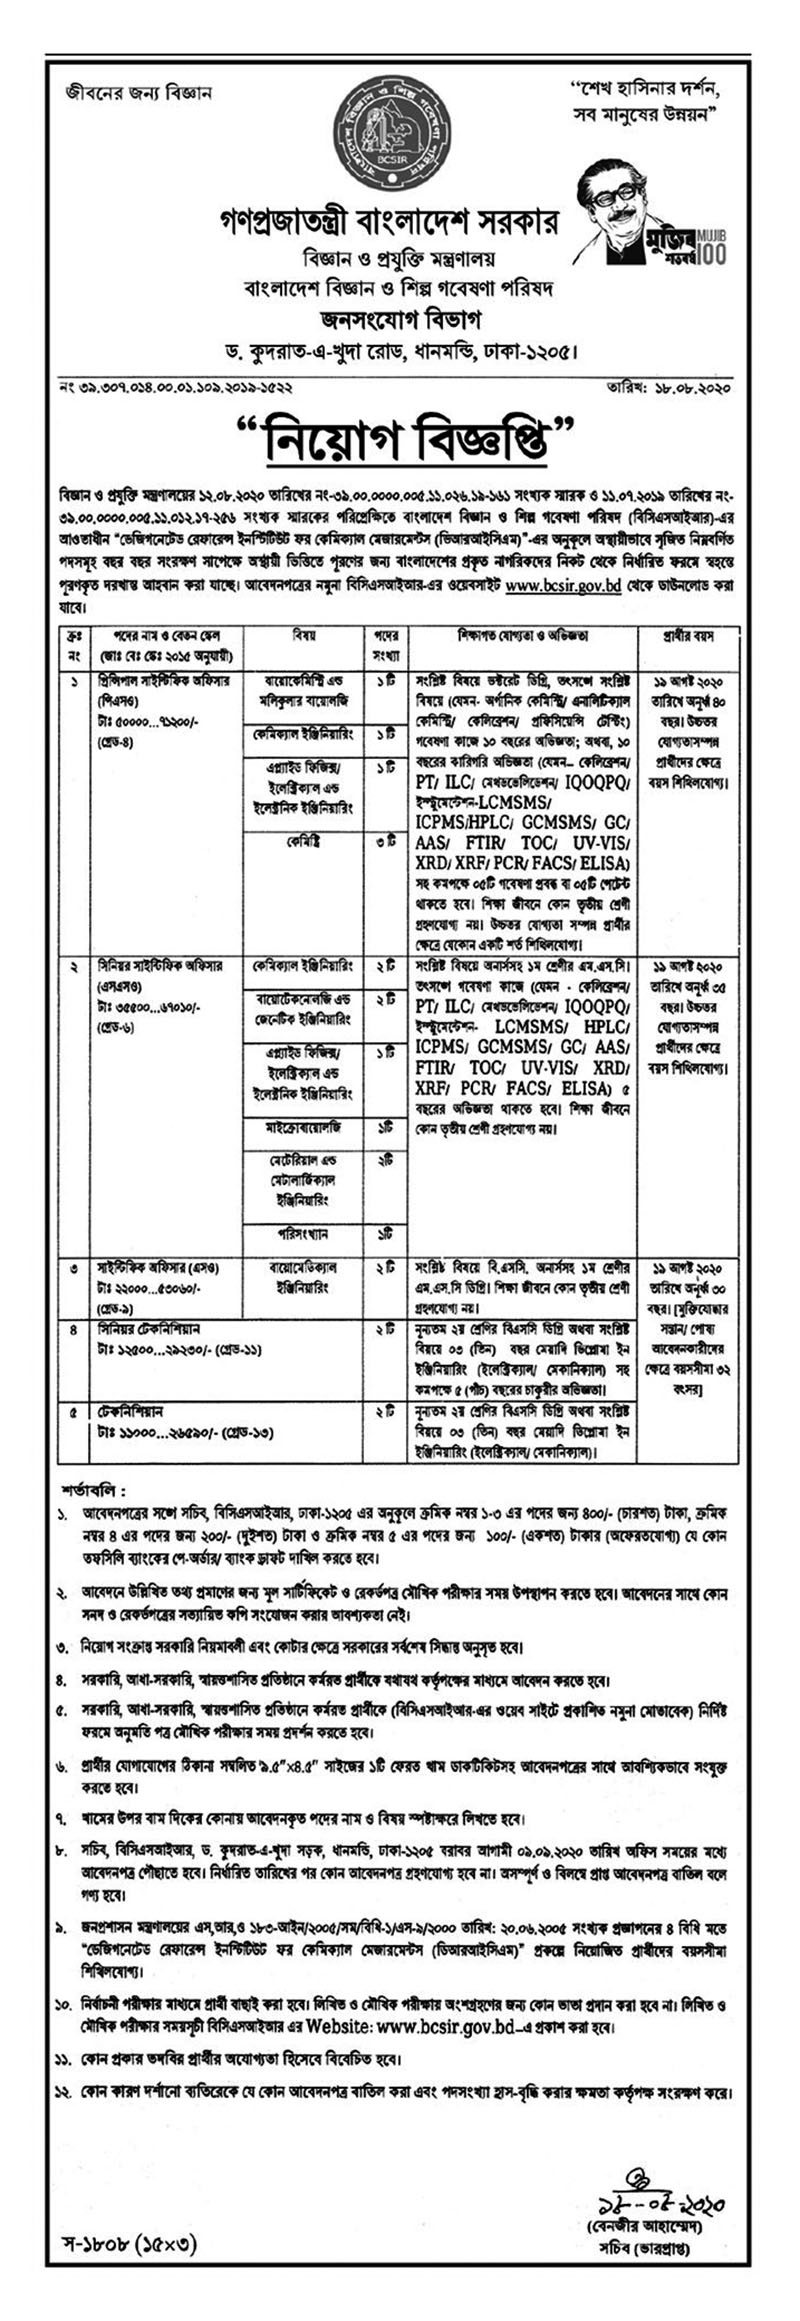 Ministry of Science and Technology Job Circular 2020